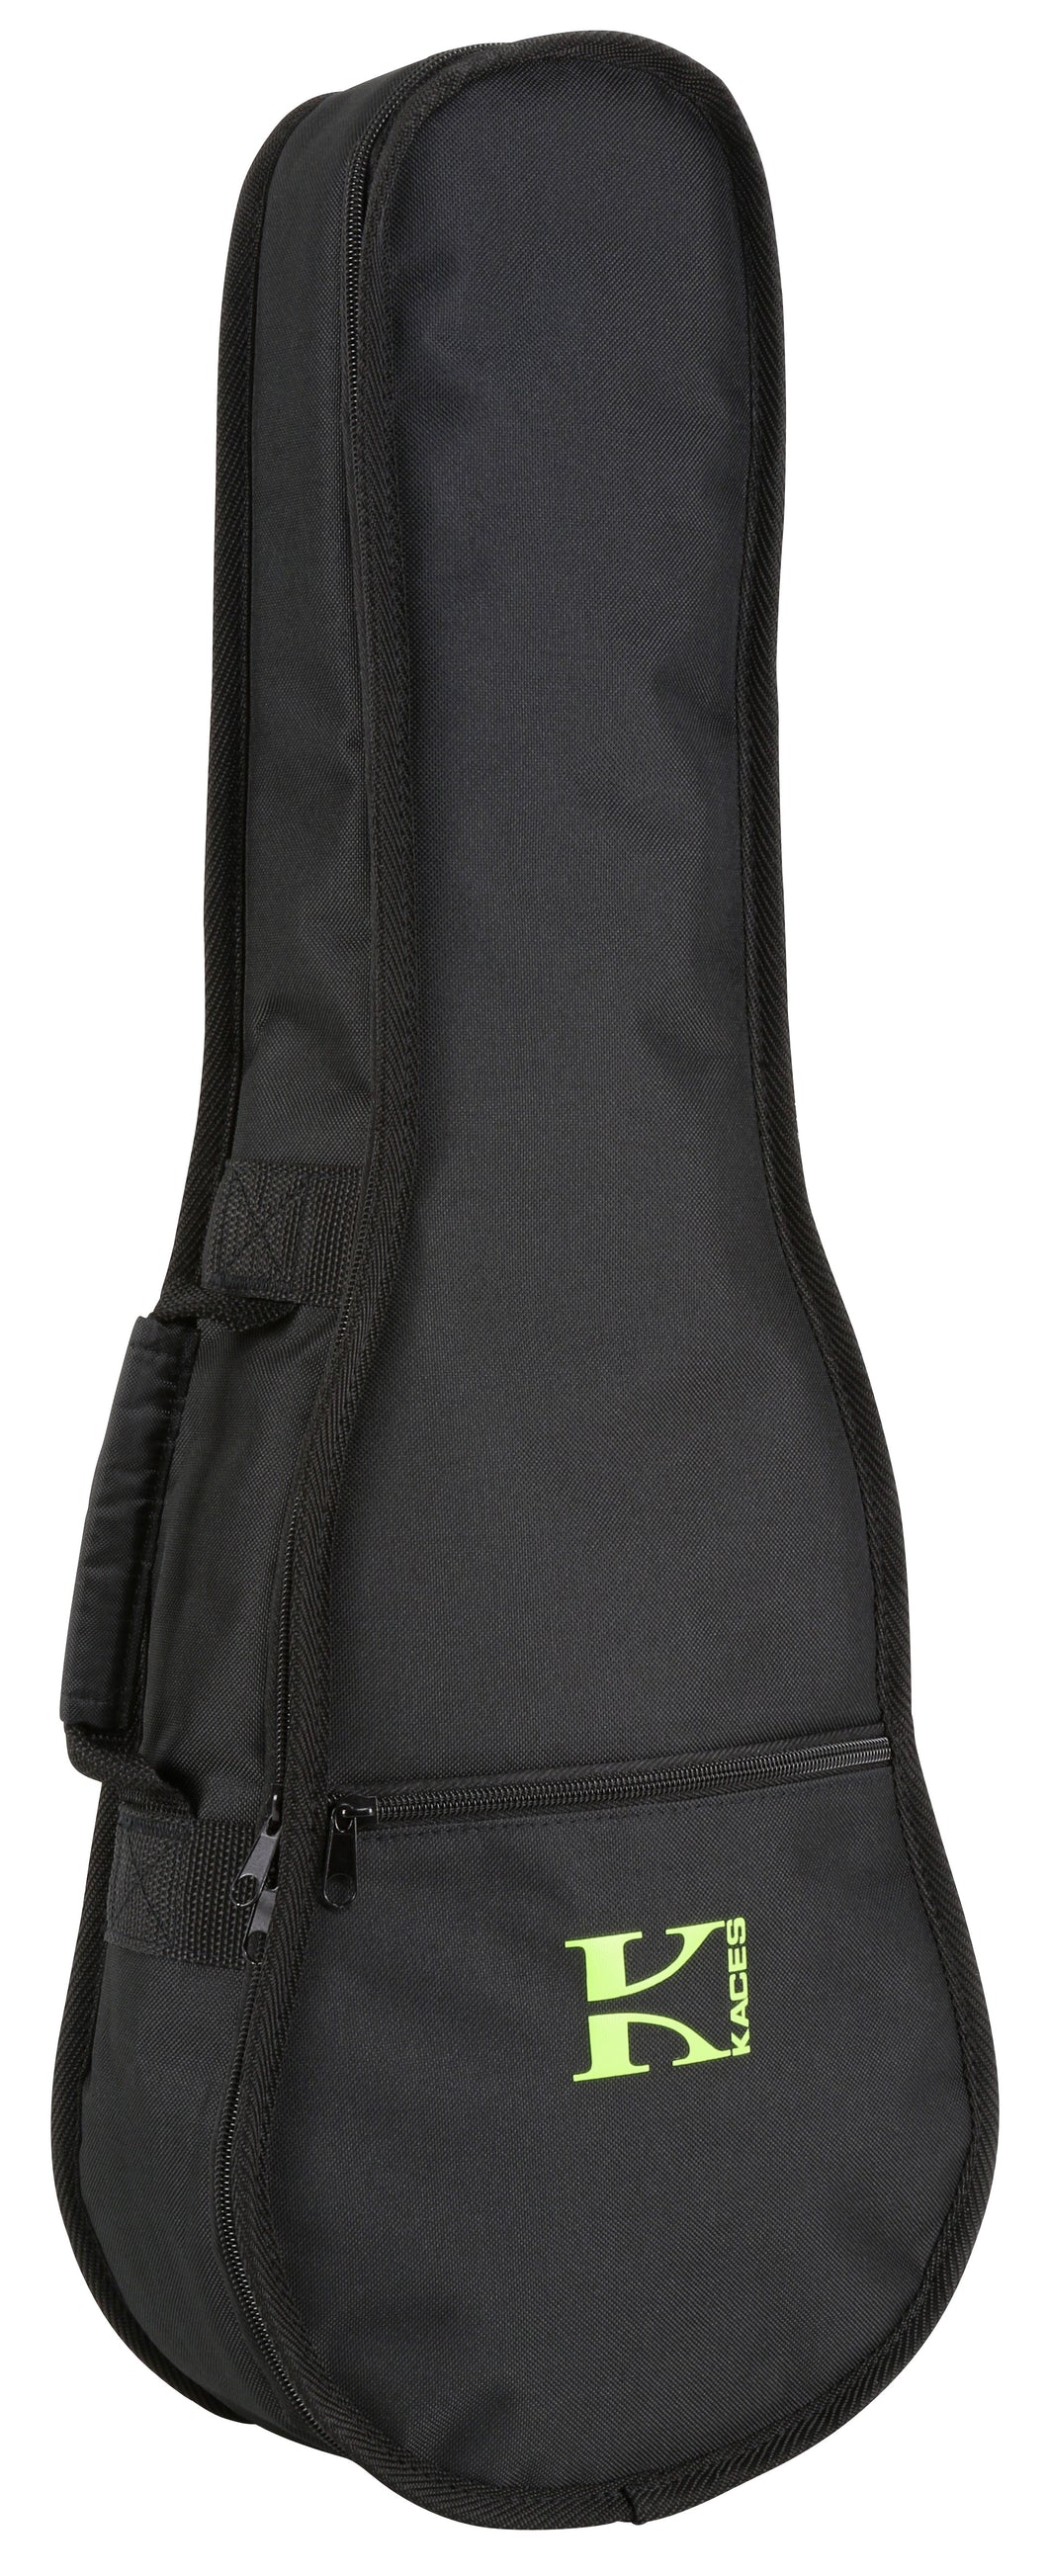 Kaces Xpress Ukulele Bag, Concert